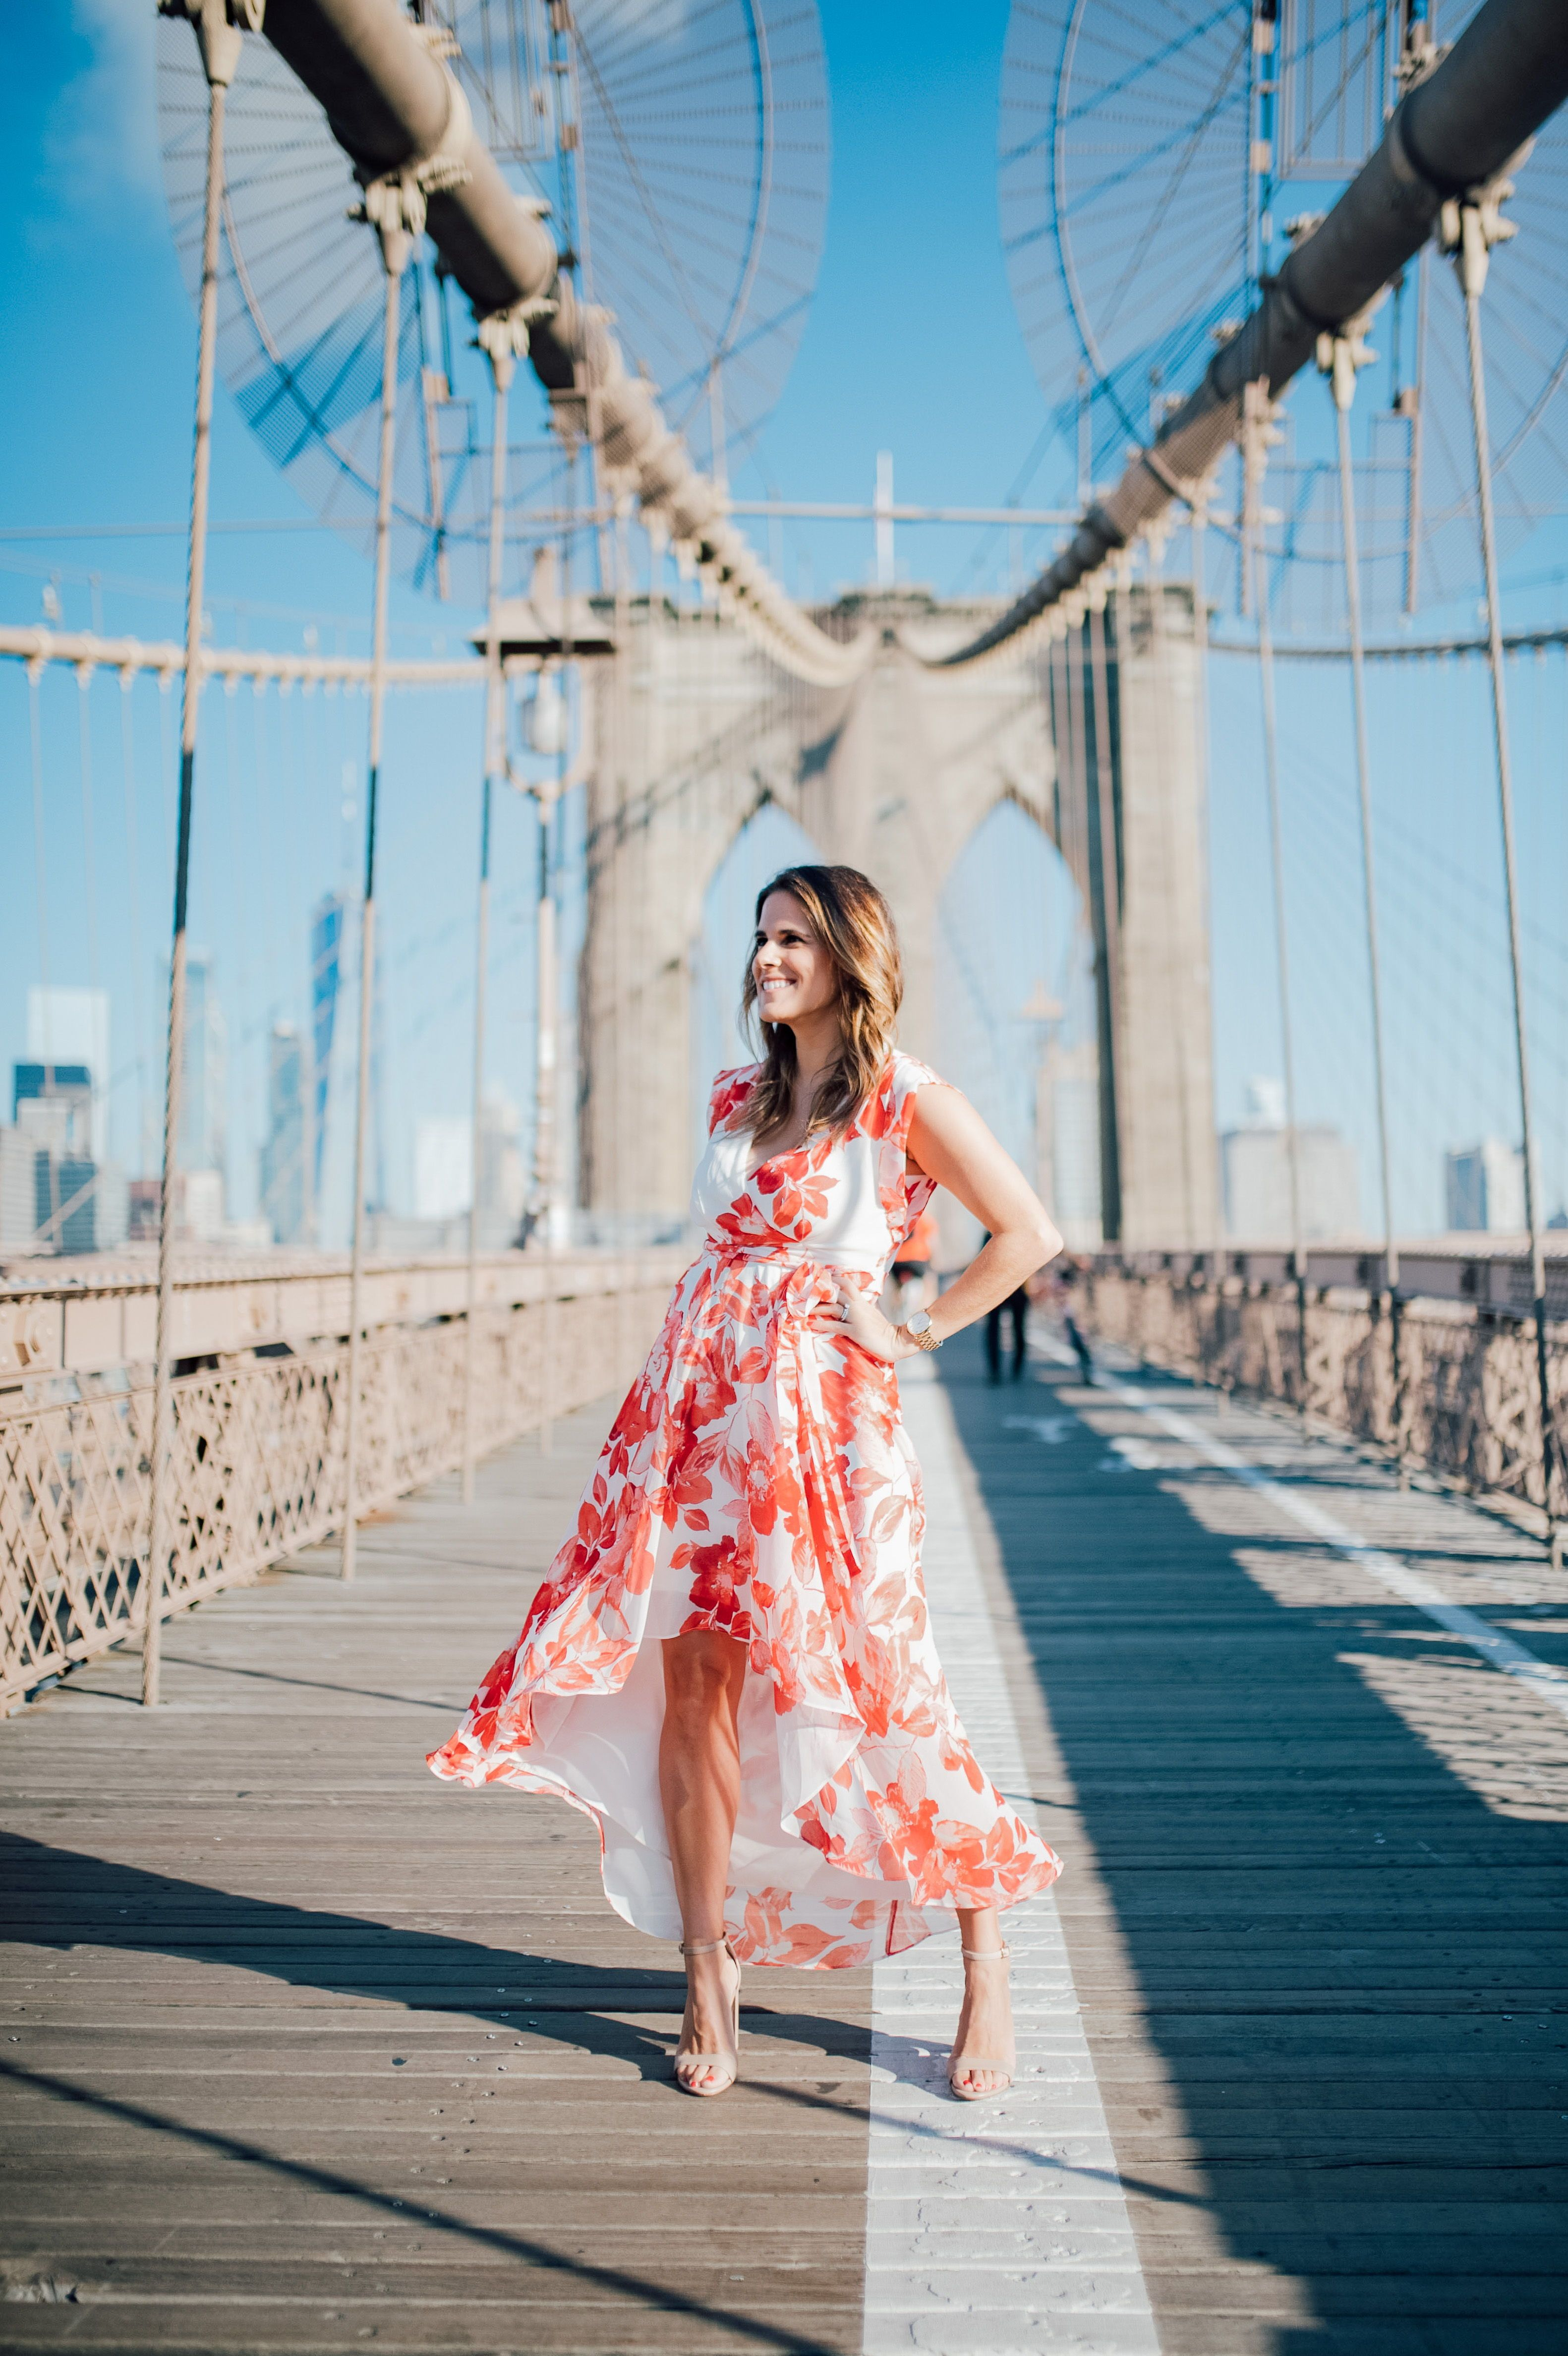 Summer Style | Summer fashion photography | Floral maxi